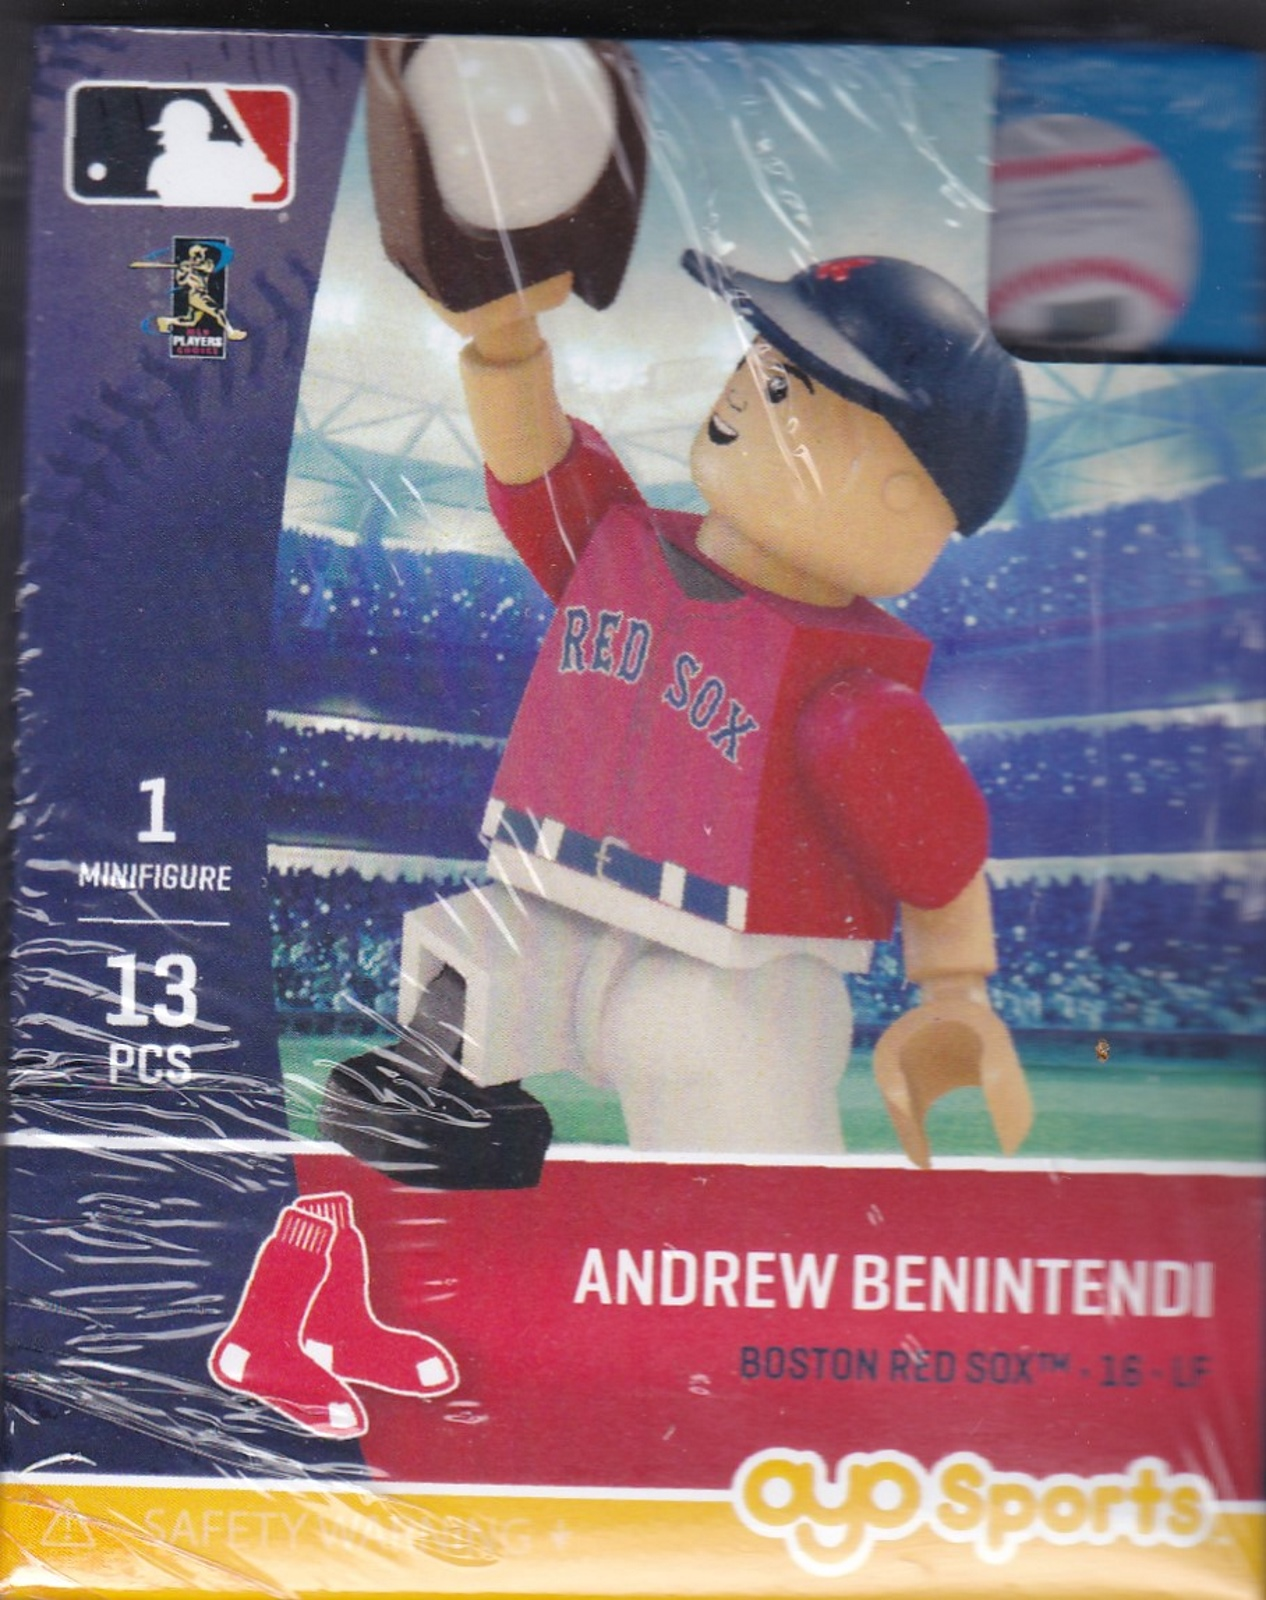 Andrew Benintendi LF OYO Baseball figure Generation 5 Series 2 Boston Red Sox